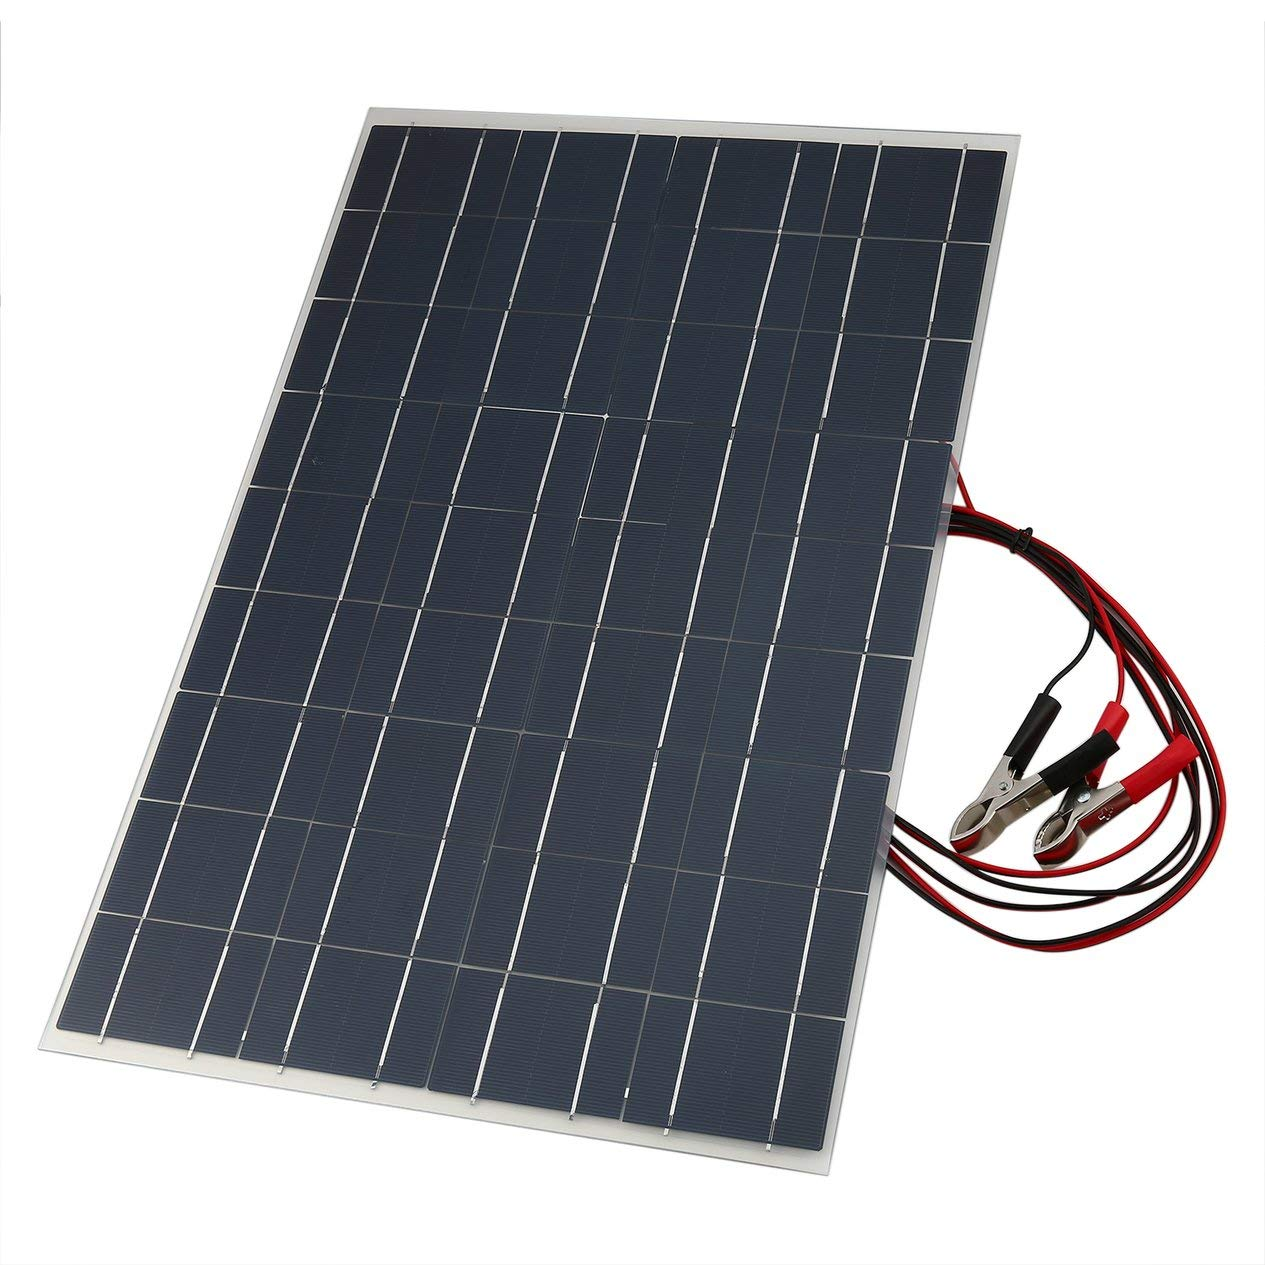 Ironheel 18V 30W Flexible Car Battery Solar Charger Portable Solar Panel Charger with Battery Charging Crocodile Clip Line